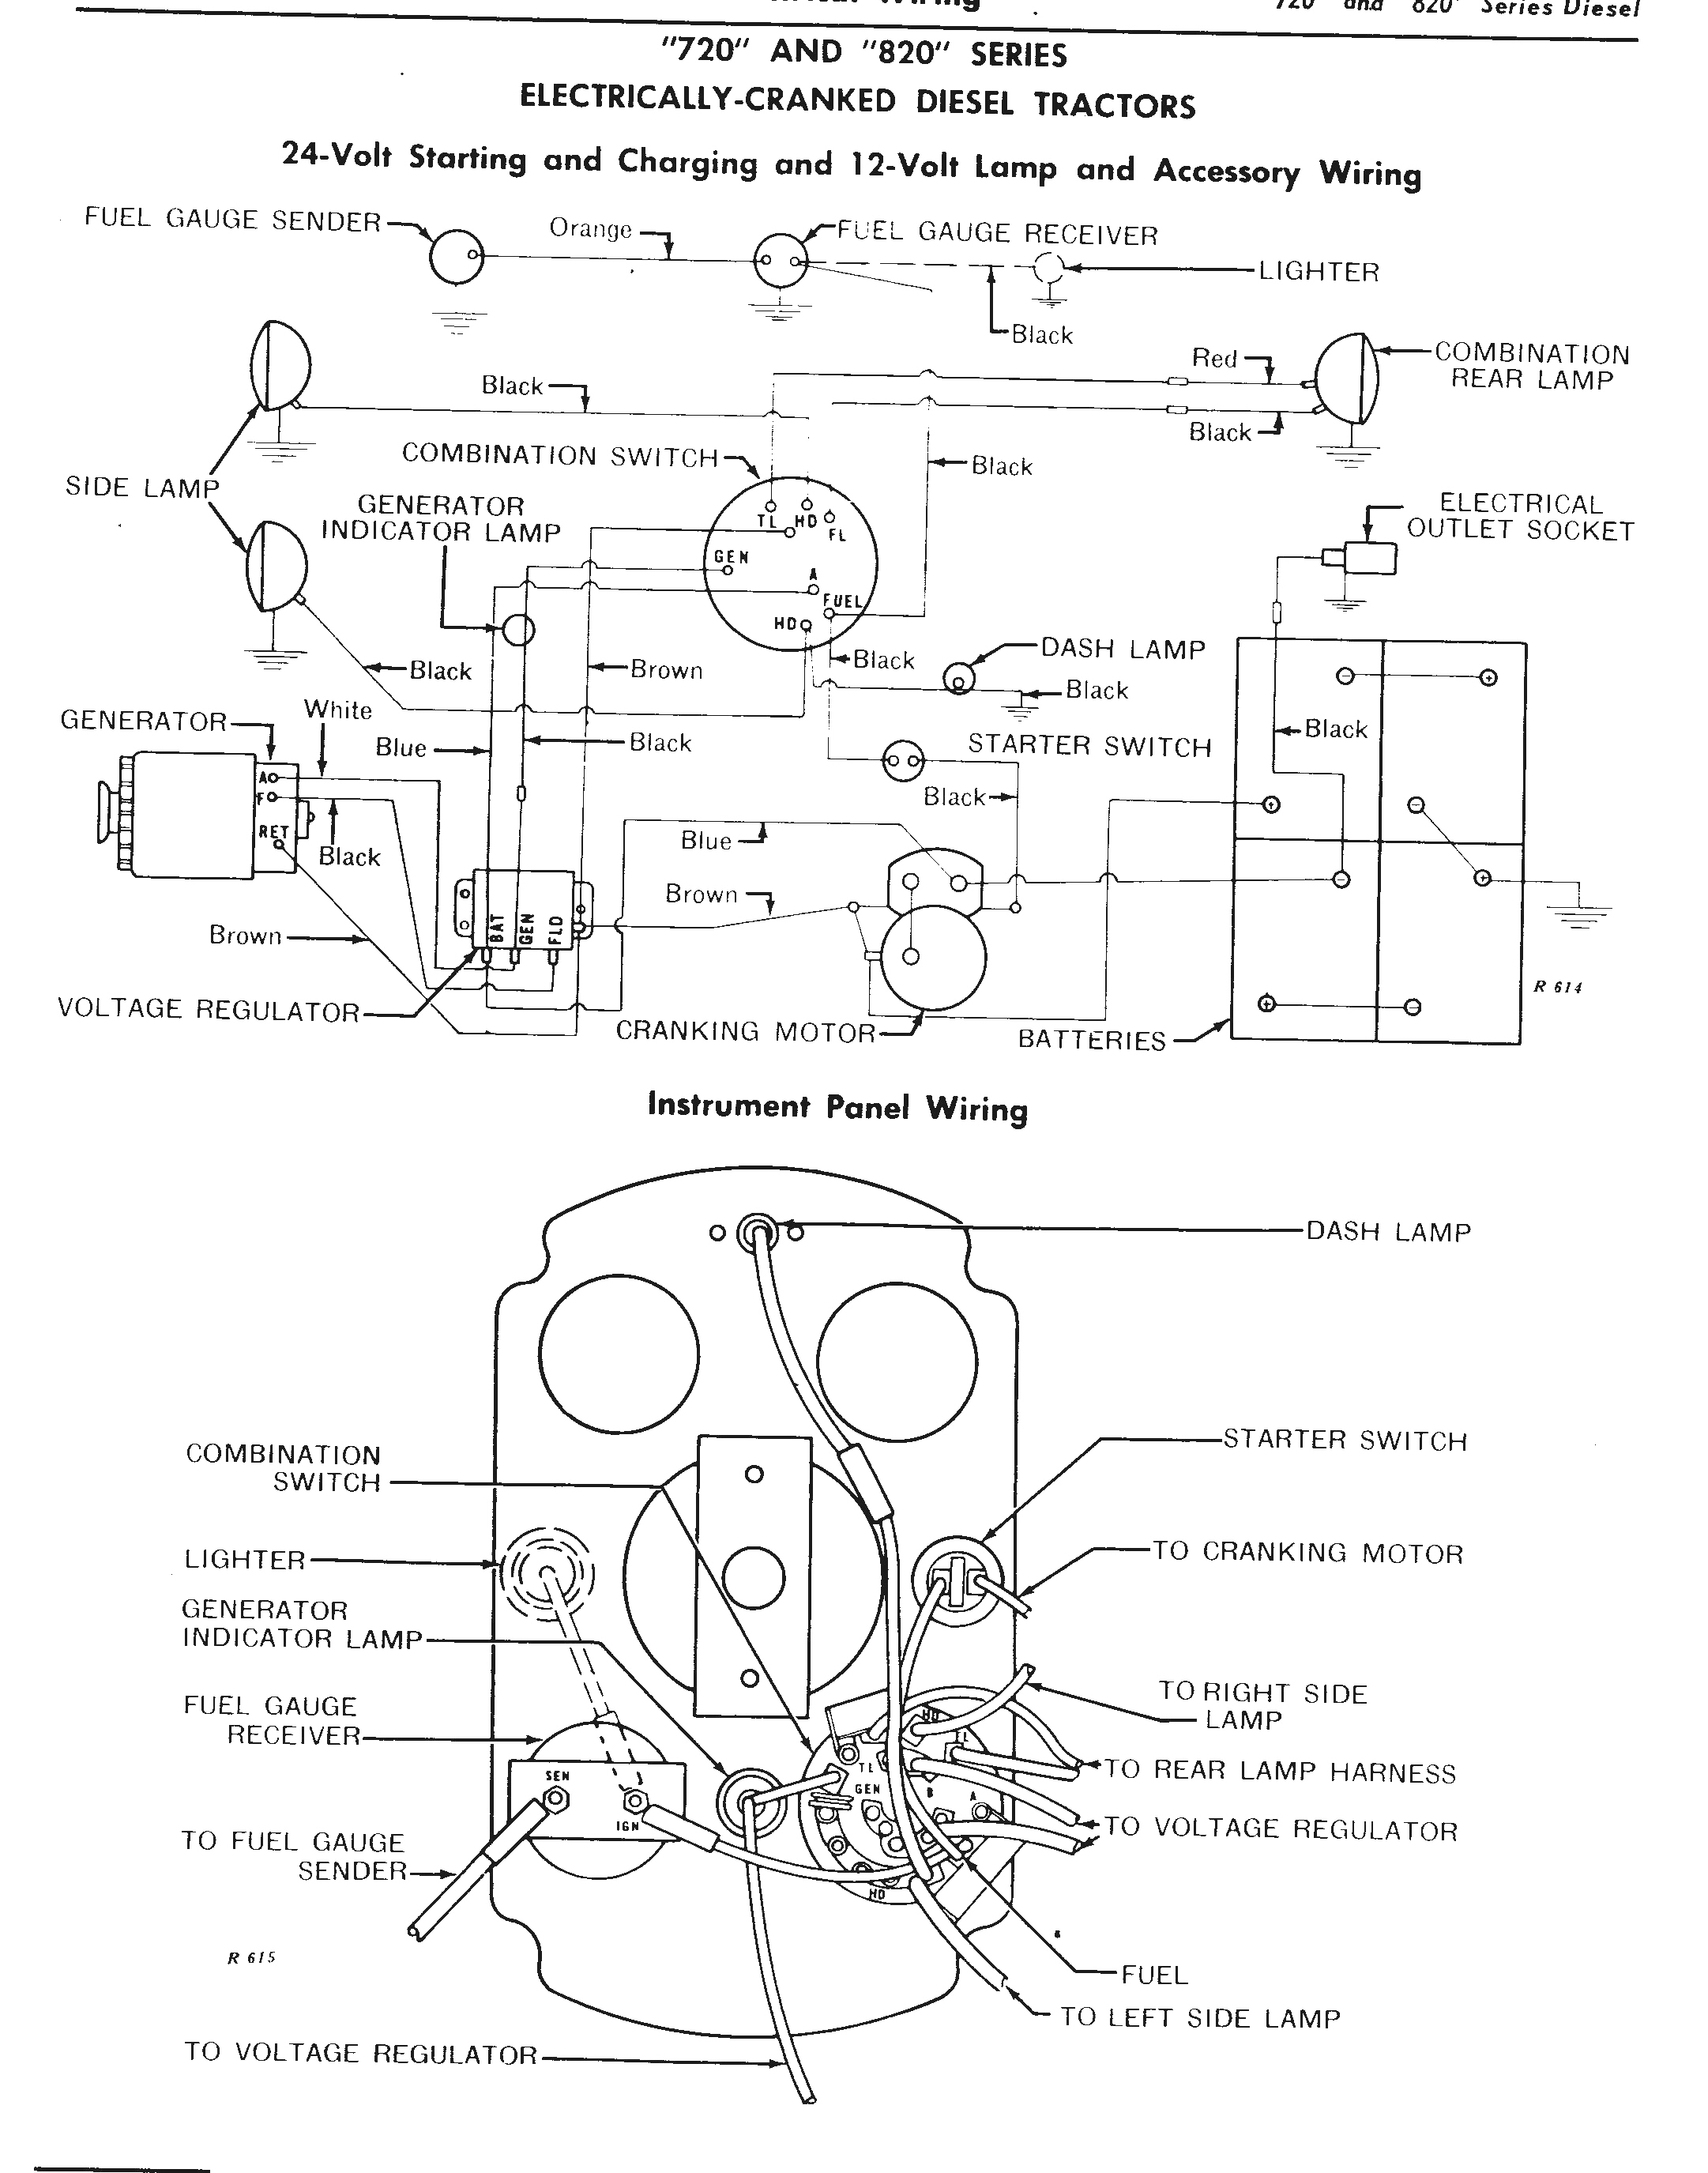 Wiring Diagram 24v The John Deere 24 Volt Electrical System Explained